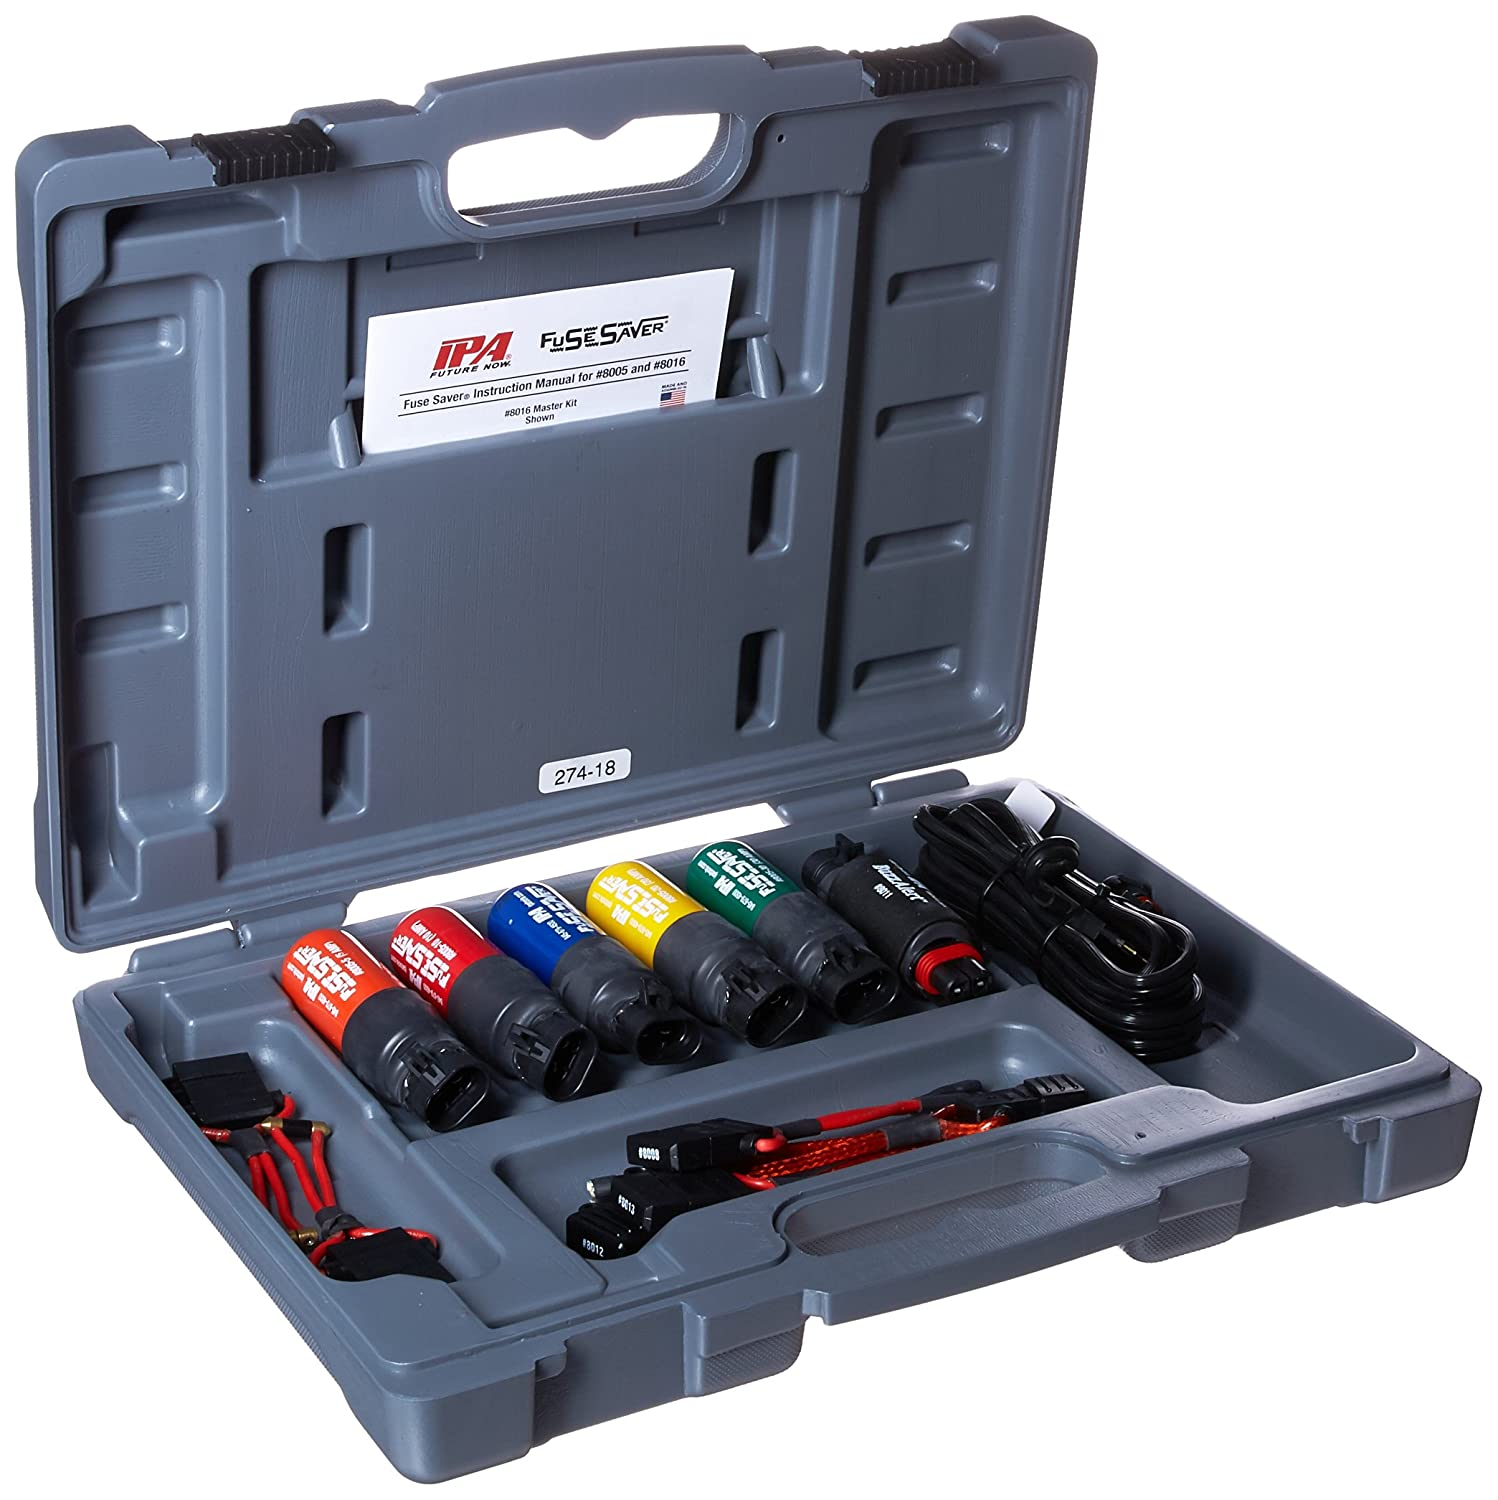 Innovative Products Of America 8016 Fuse Saver Master Home Box For Kit Automotive